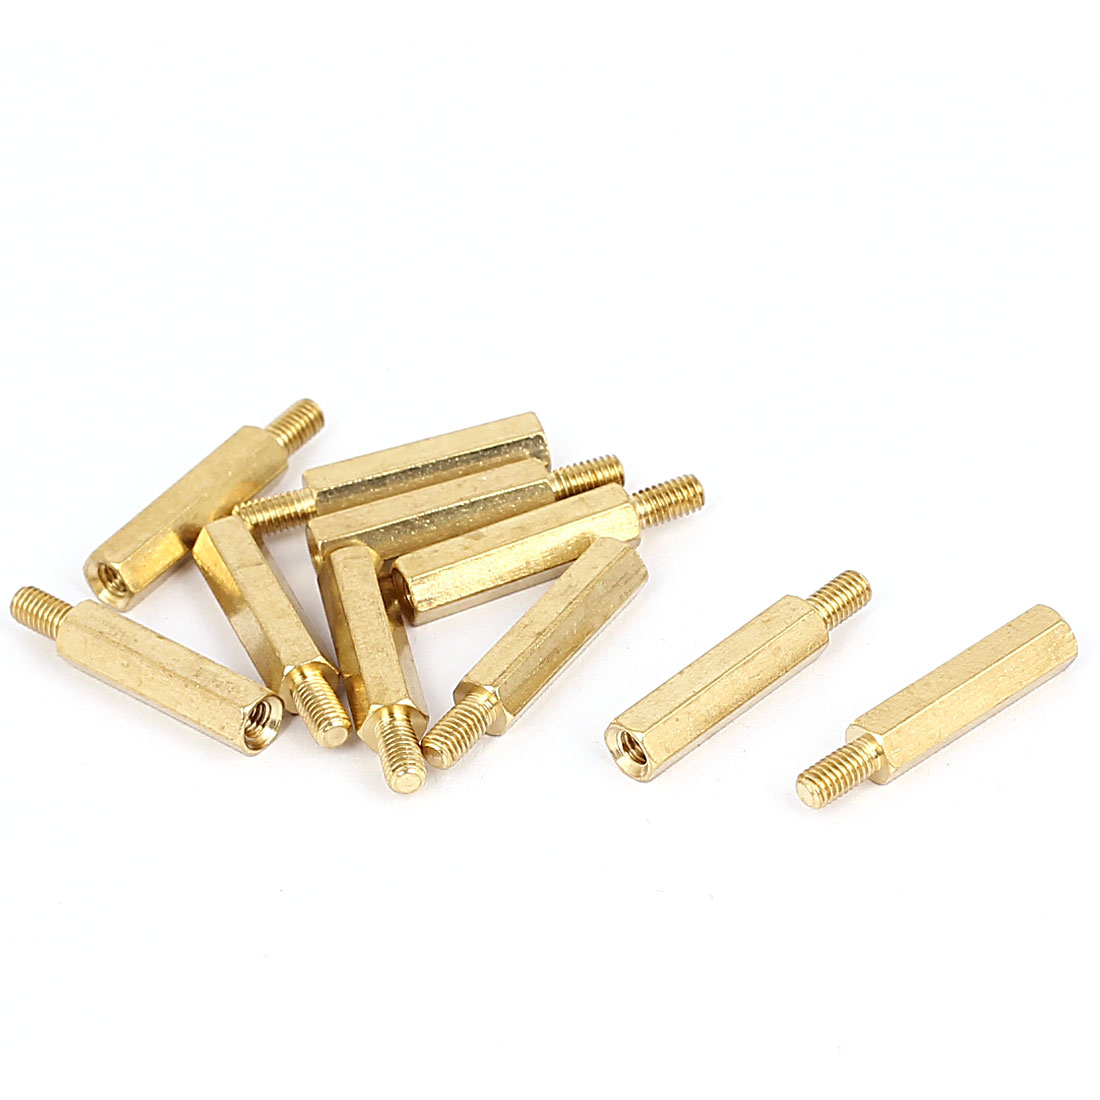 M3x17mm+6mm Male to Female Thread 0.5mm Pitch Brass Hex Standoff Spacer 10Pcs